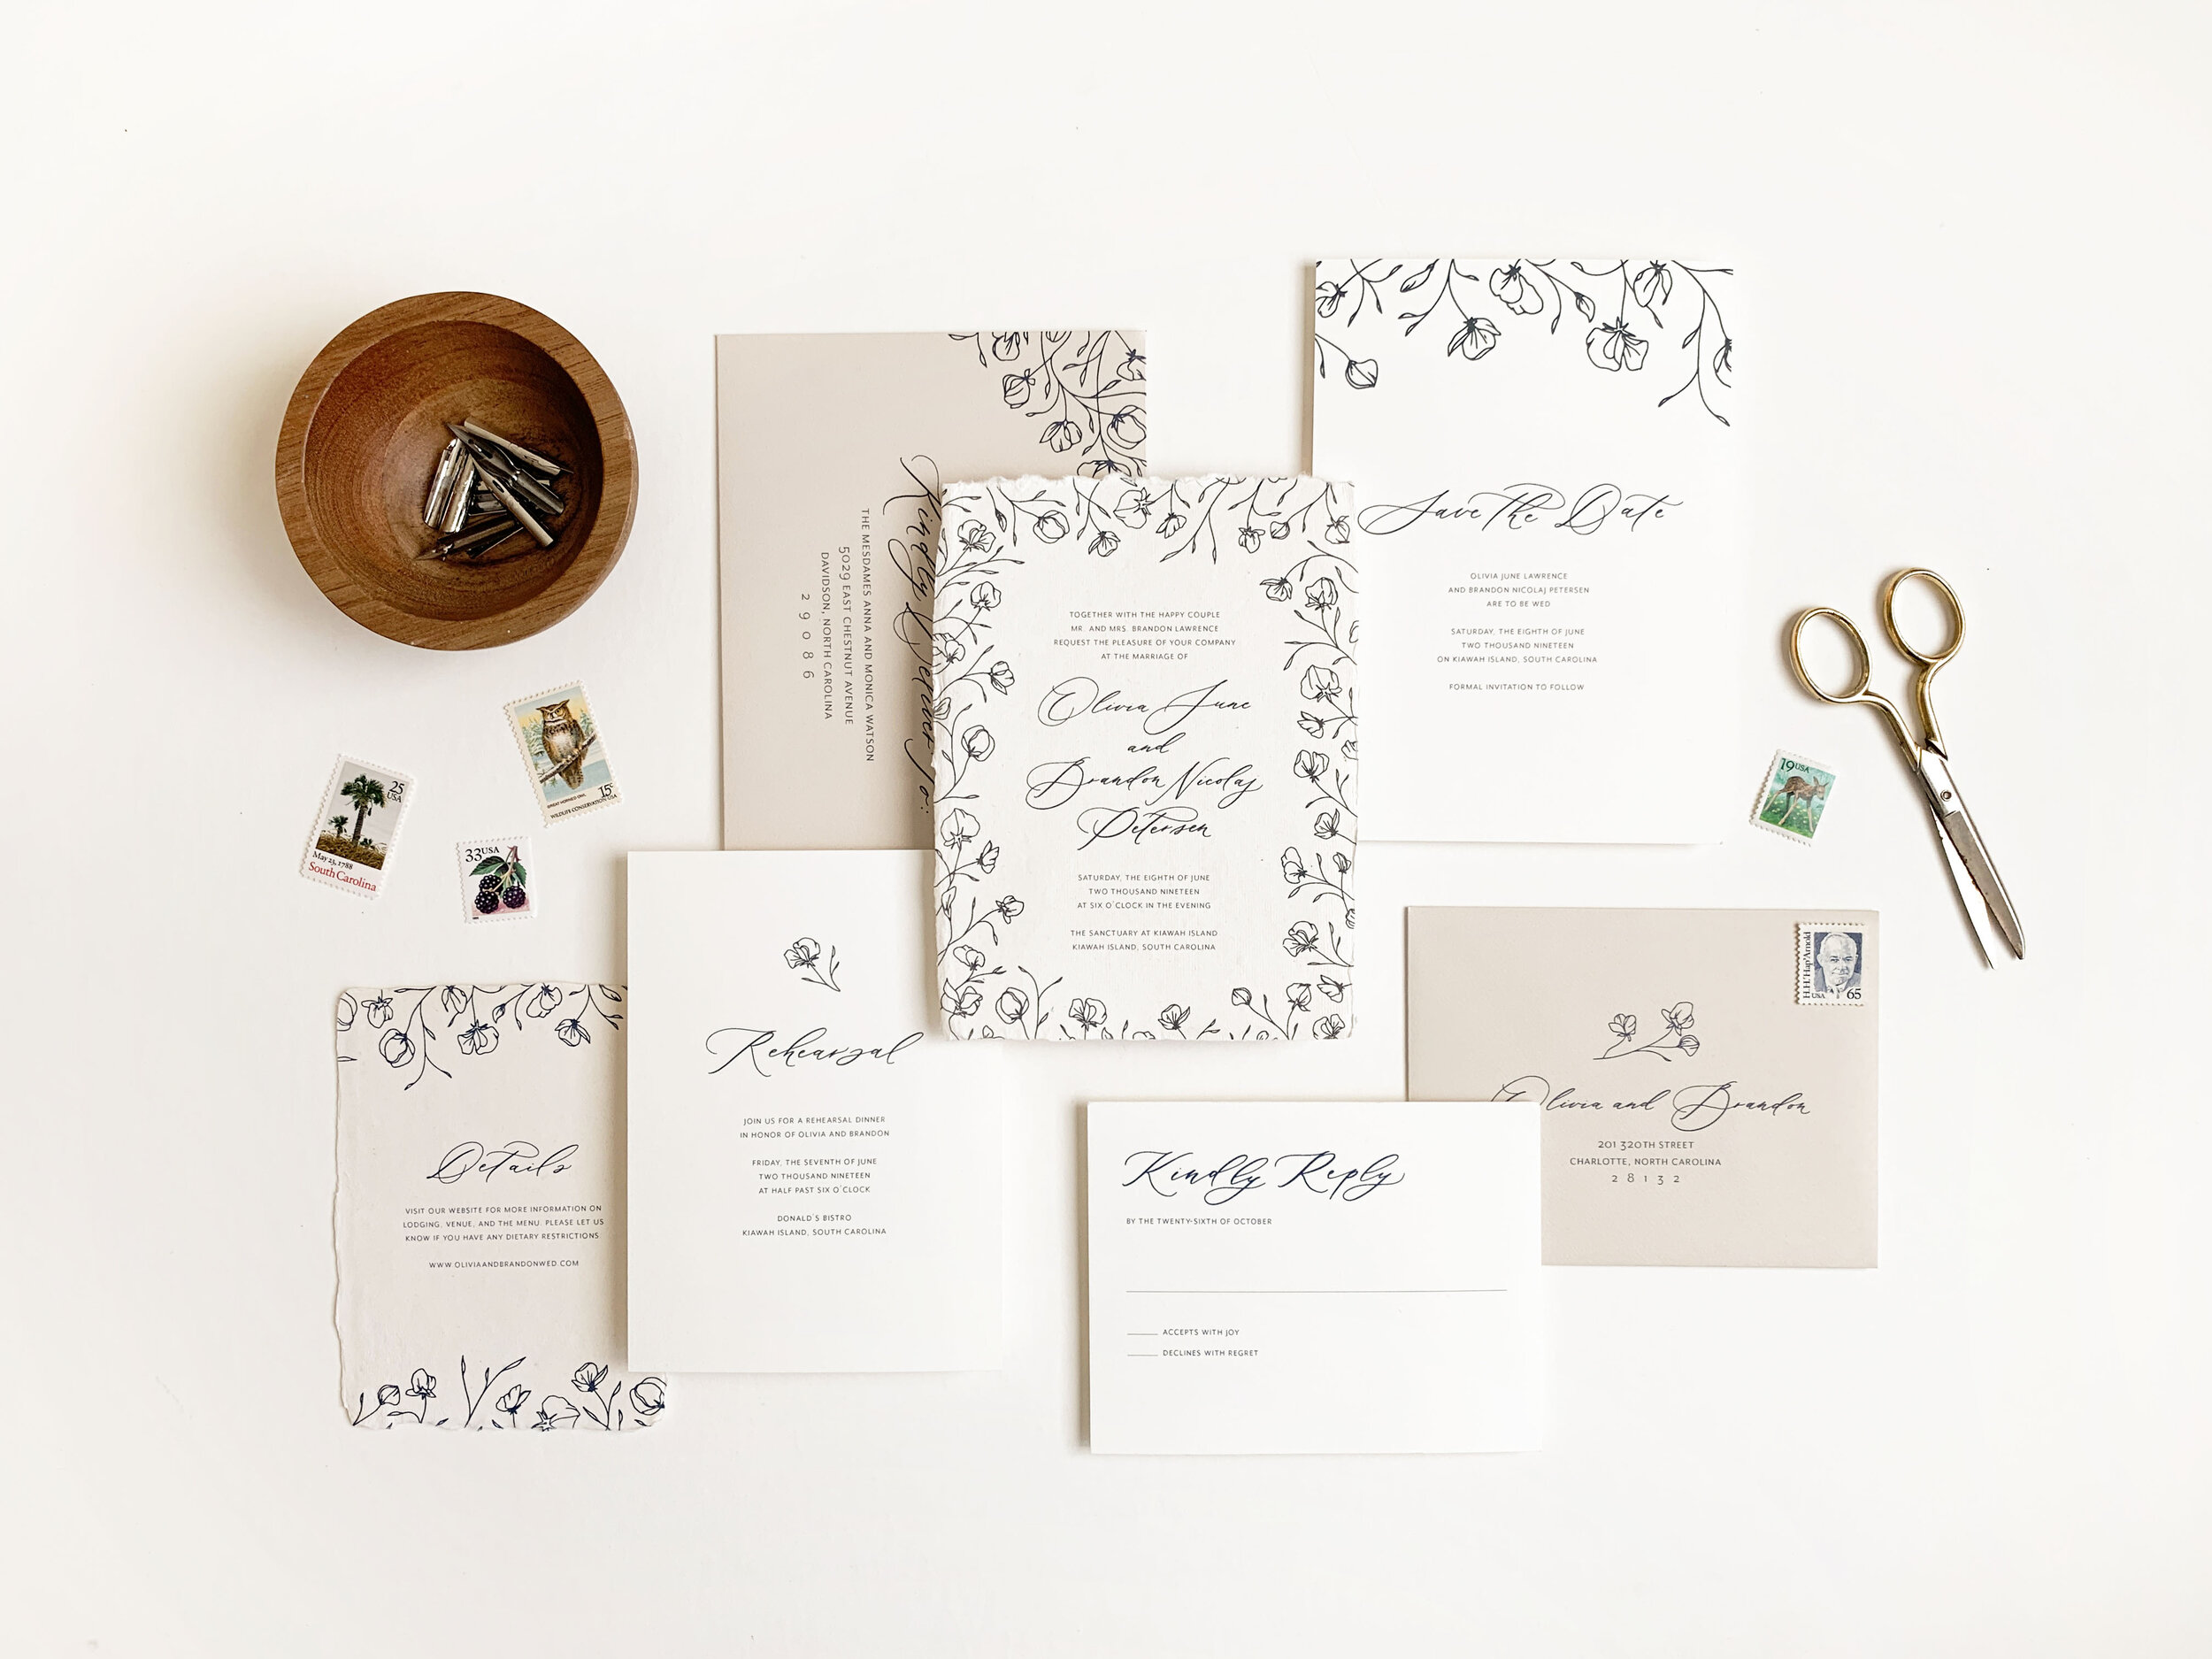 Elegant and timeless wedding invitations with floral illustrations romantic modern calligraphy. Printed on handmade paper, assembled with vellum wrap, thread, and a wax seal. Printed calligraphy addressing and vintage postage. Luxury wedding invitations.